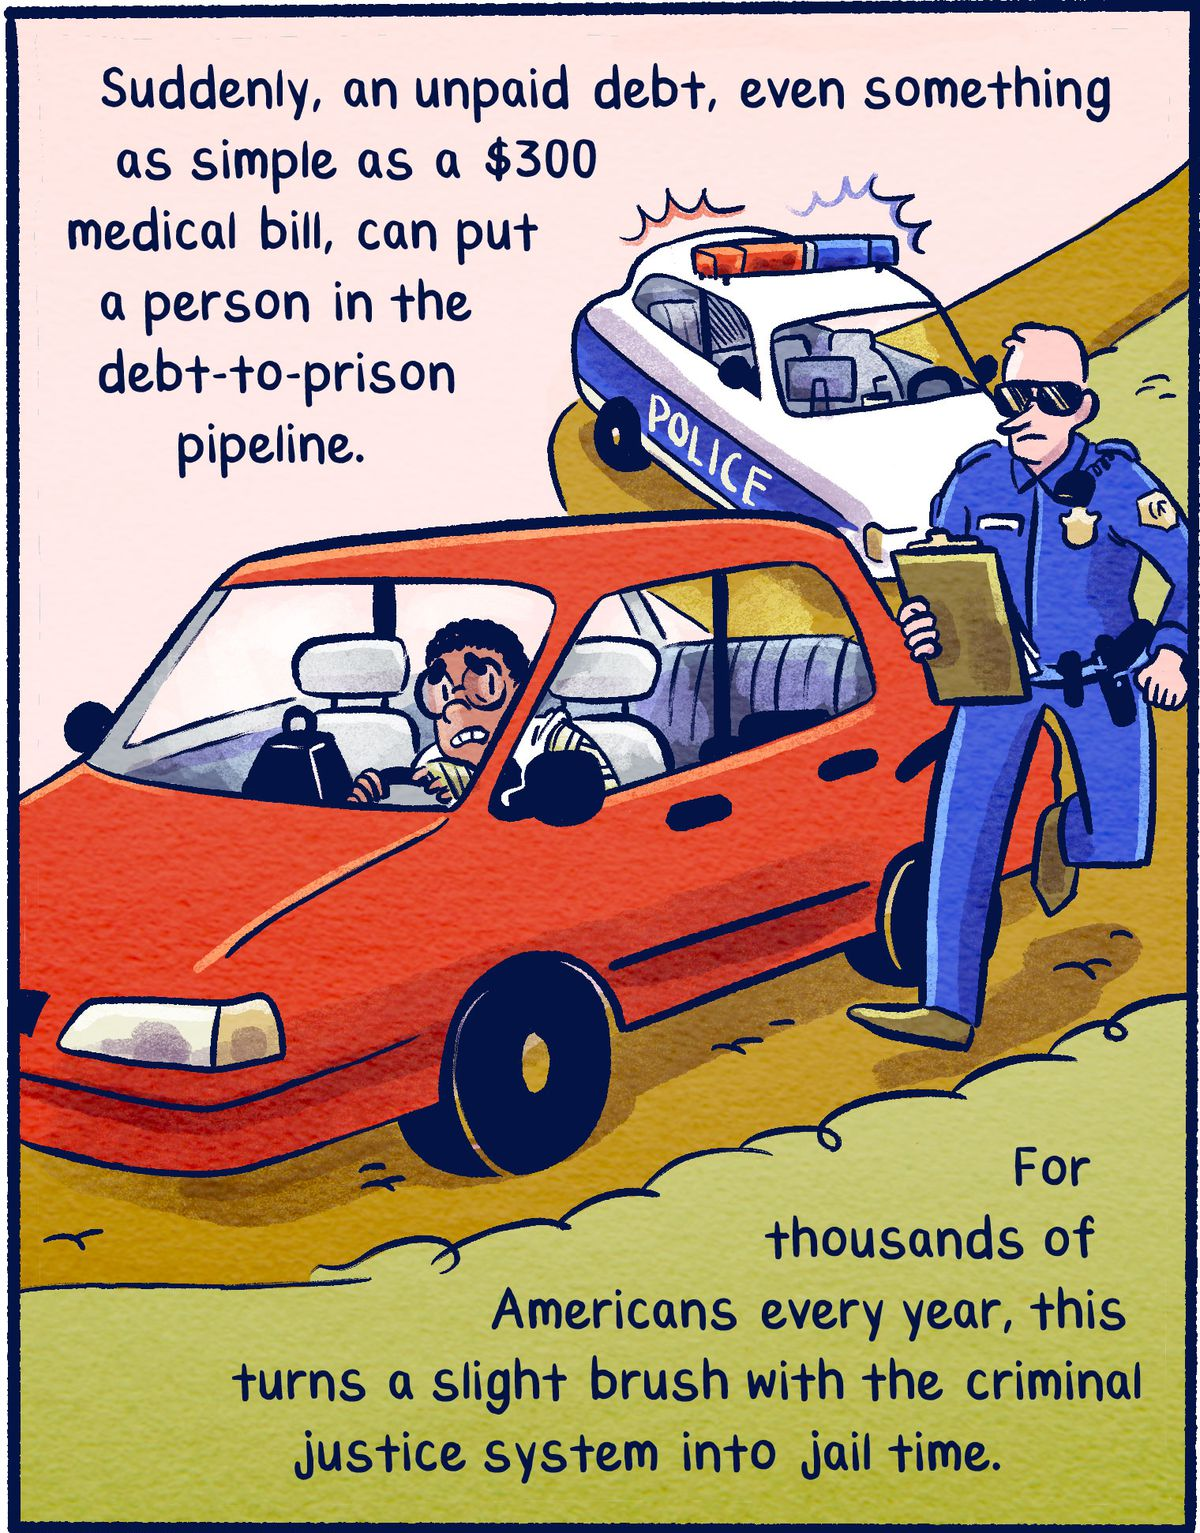 Suddenly, an unpaid debt, even something as simple as a $300 medical bill, can put a person in the debt-to-prison pipeline. For thousands of Americans every year, this turns a slight brush with the criminal justice system into jail time.